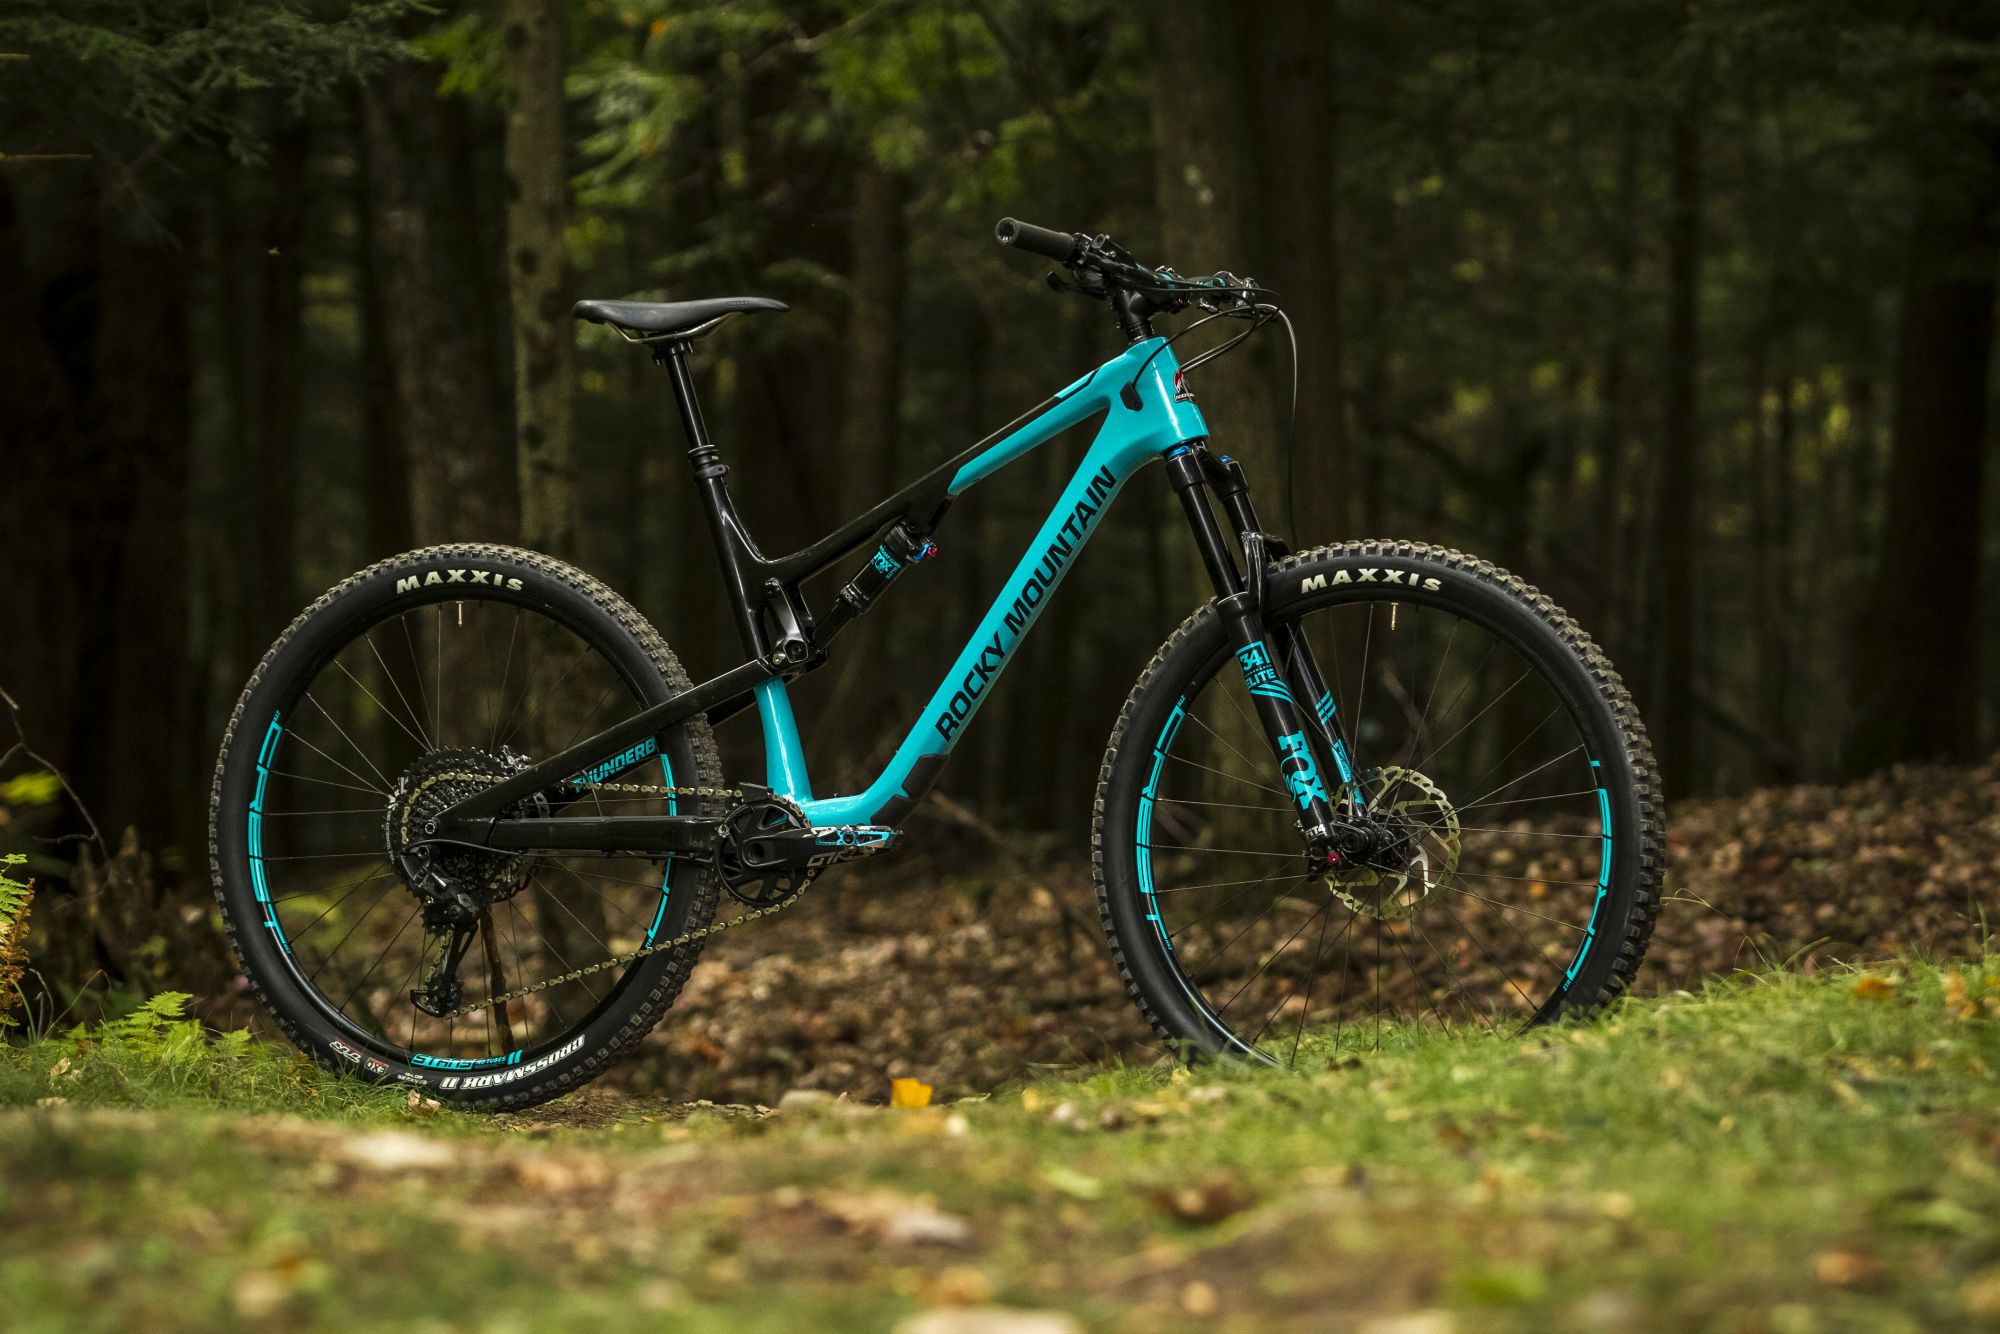 921ef5749c8 Rocky Mountain Revamps Thunderbolt XC Trail Bike, Increases Suspension  Travel for 2018